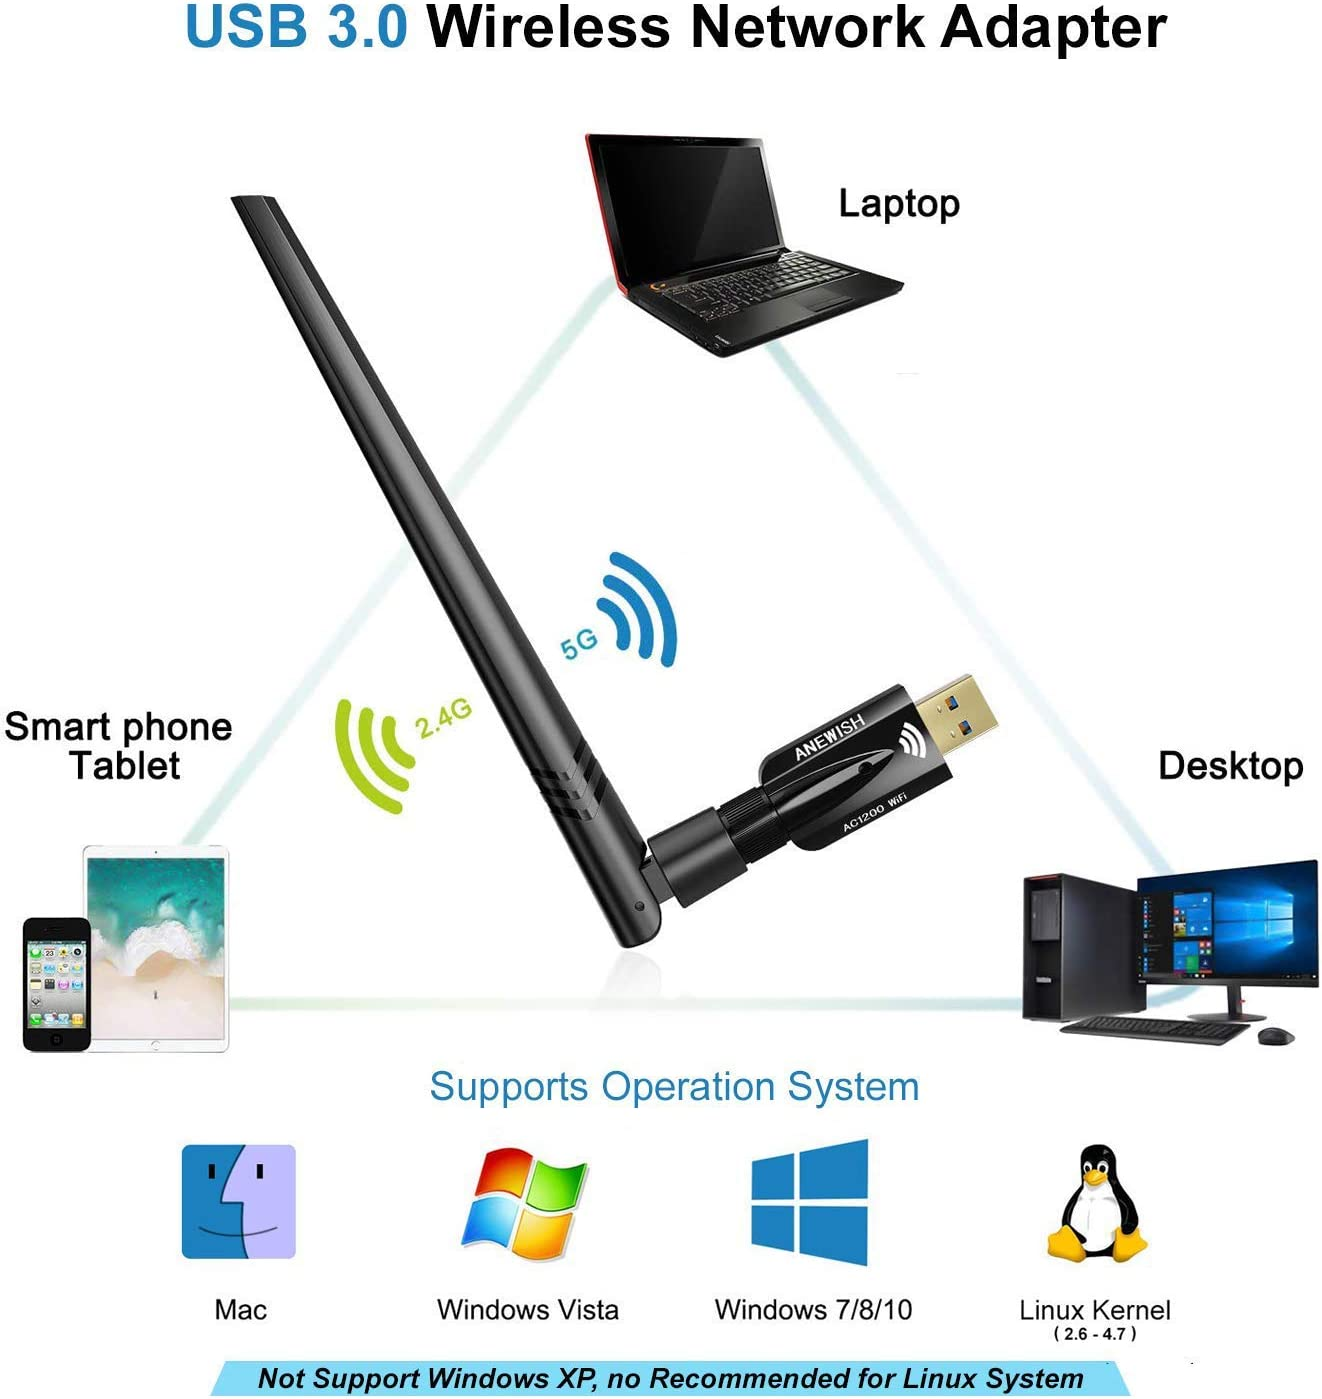 USB WiFi Adapter for PC 1200Mbps Dual Band 2.4GHz//5GHz Fast USB3.0 High Gain 5dBi Antenna 802.11ac WiFi Dongle Wireless Network Adapter for Desktop Laptop Supports Windows Mac and Linux